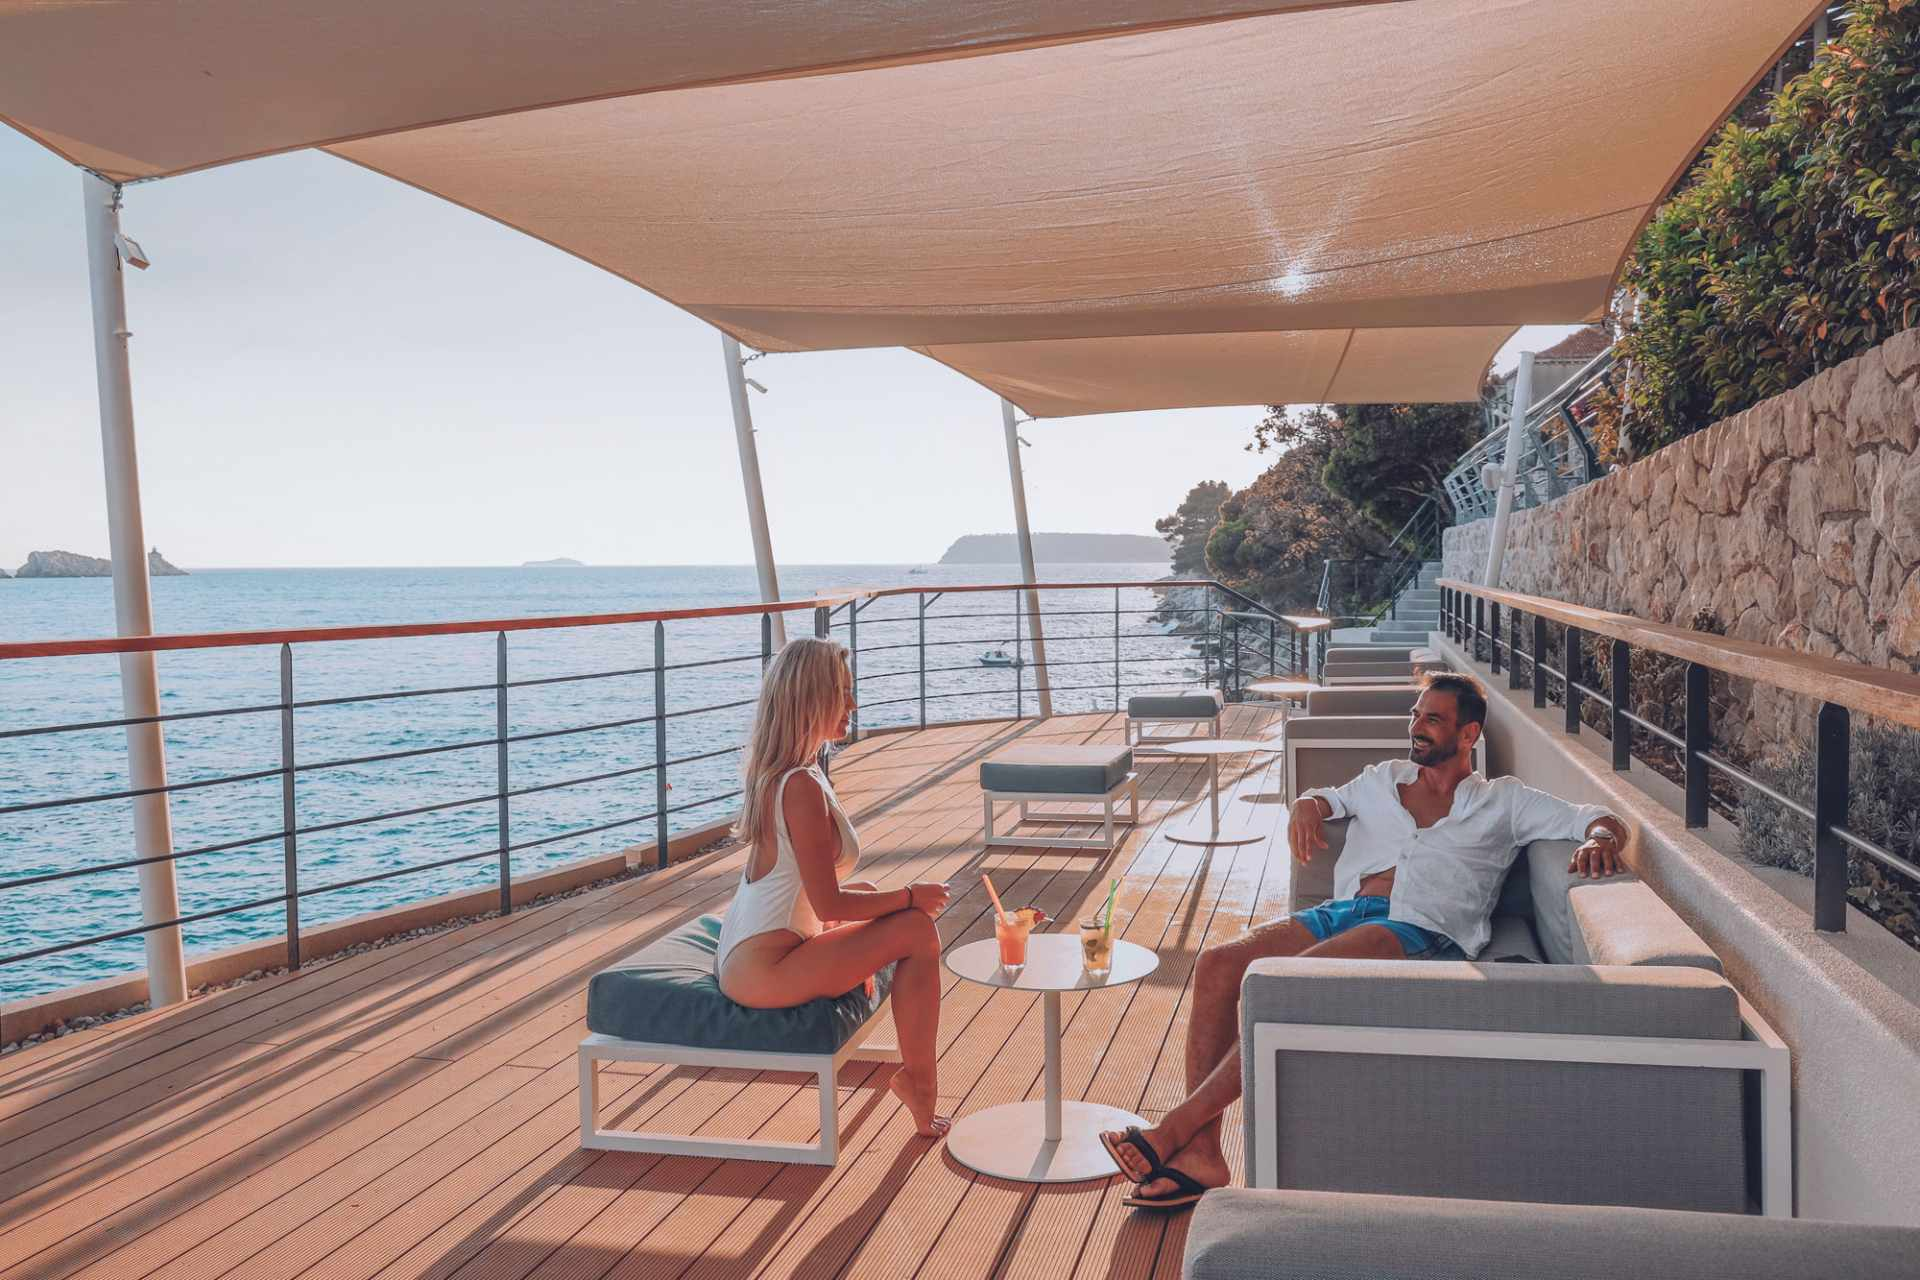 couple-enjoying-drinks-at-sunset-at-cafe-bar-more-by-sea-3-days-in-dubrovnik-itinerary